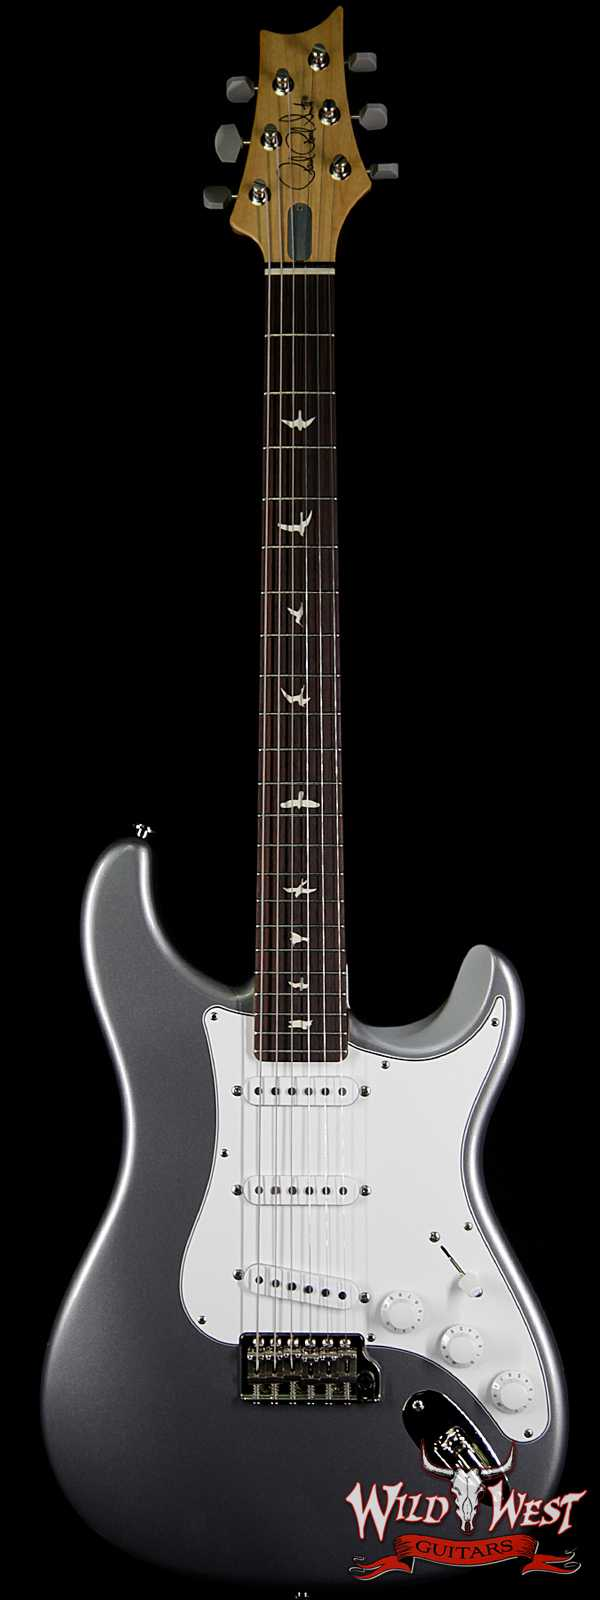 PRS John Mayer Signature Model Silver Sky Maple Neck Rosewood Fingerboard Tungsten (Silver)